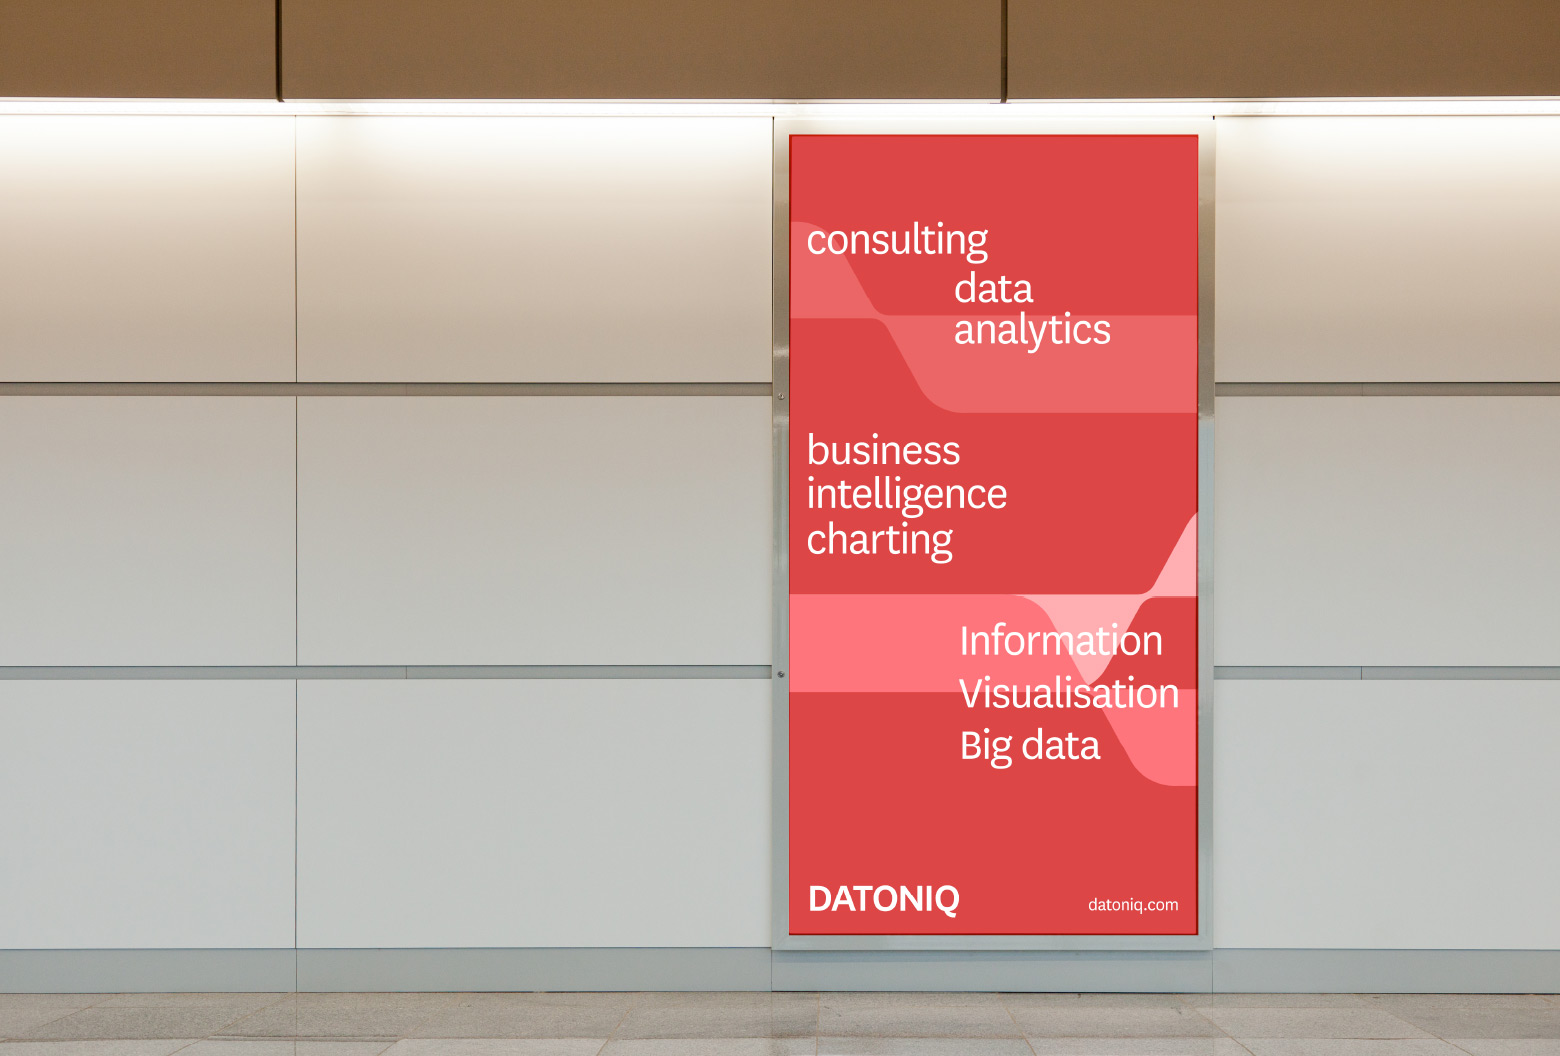 Datoniq Poster on Wall